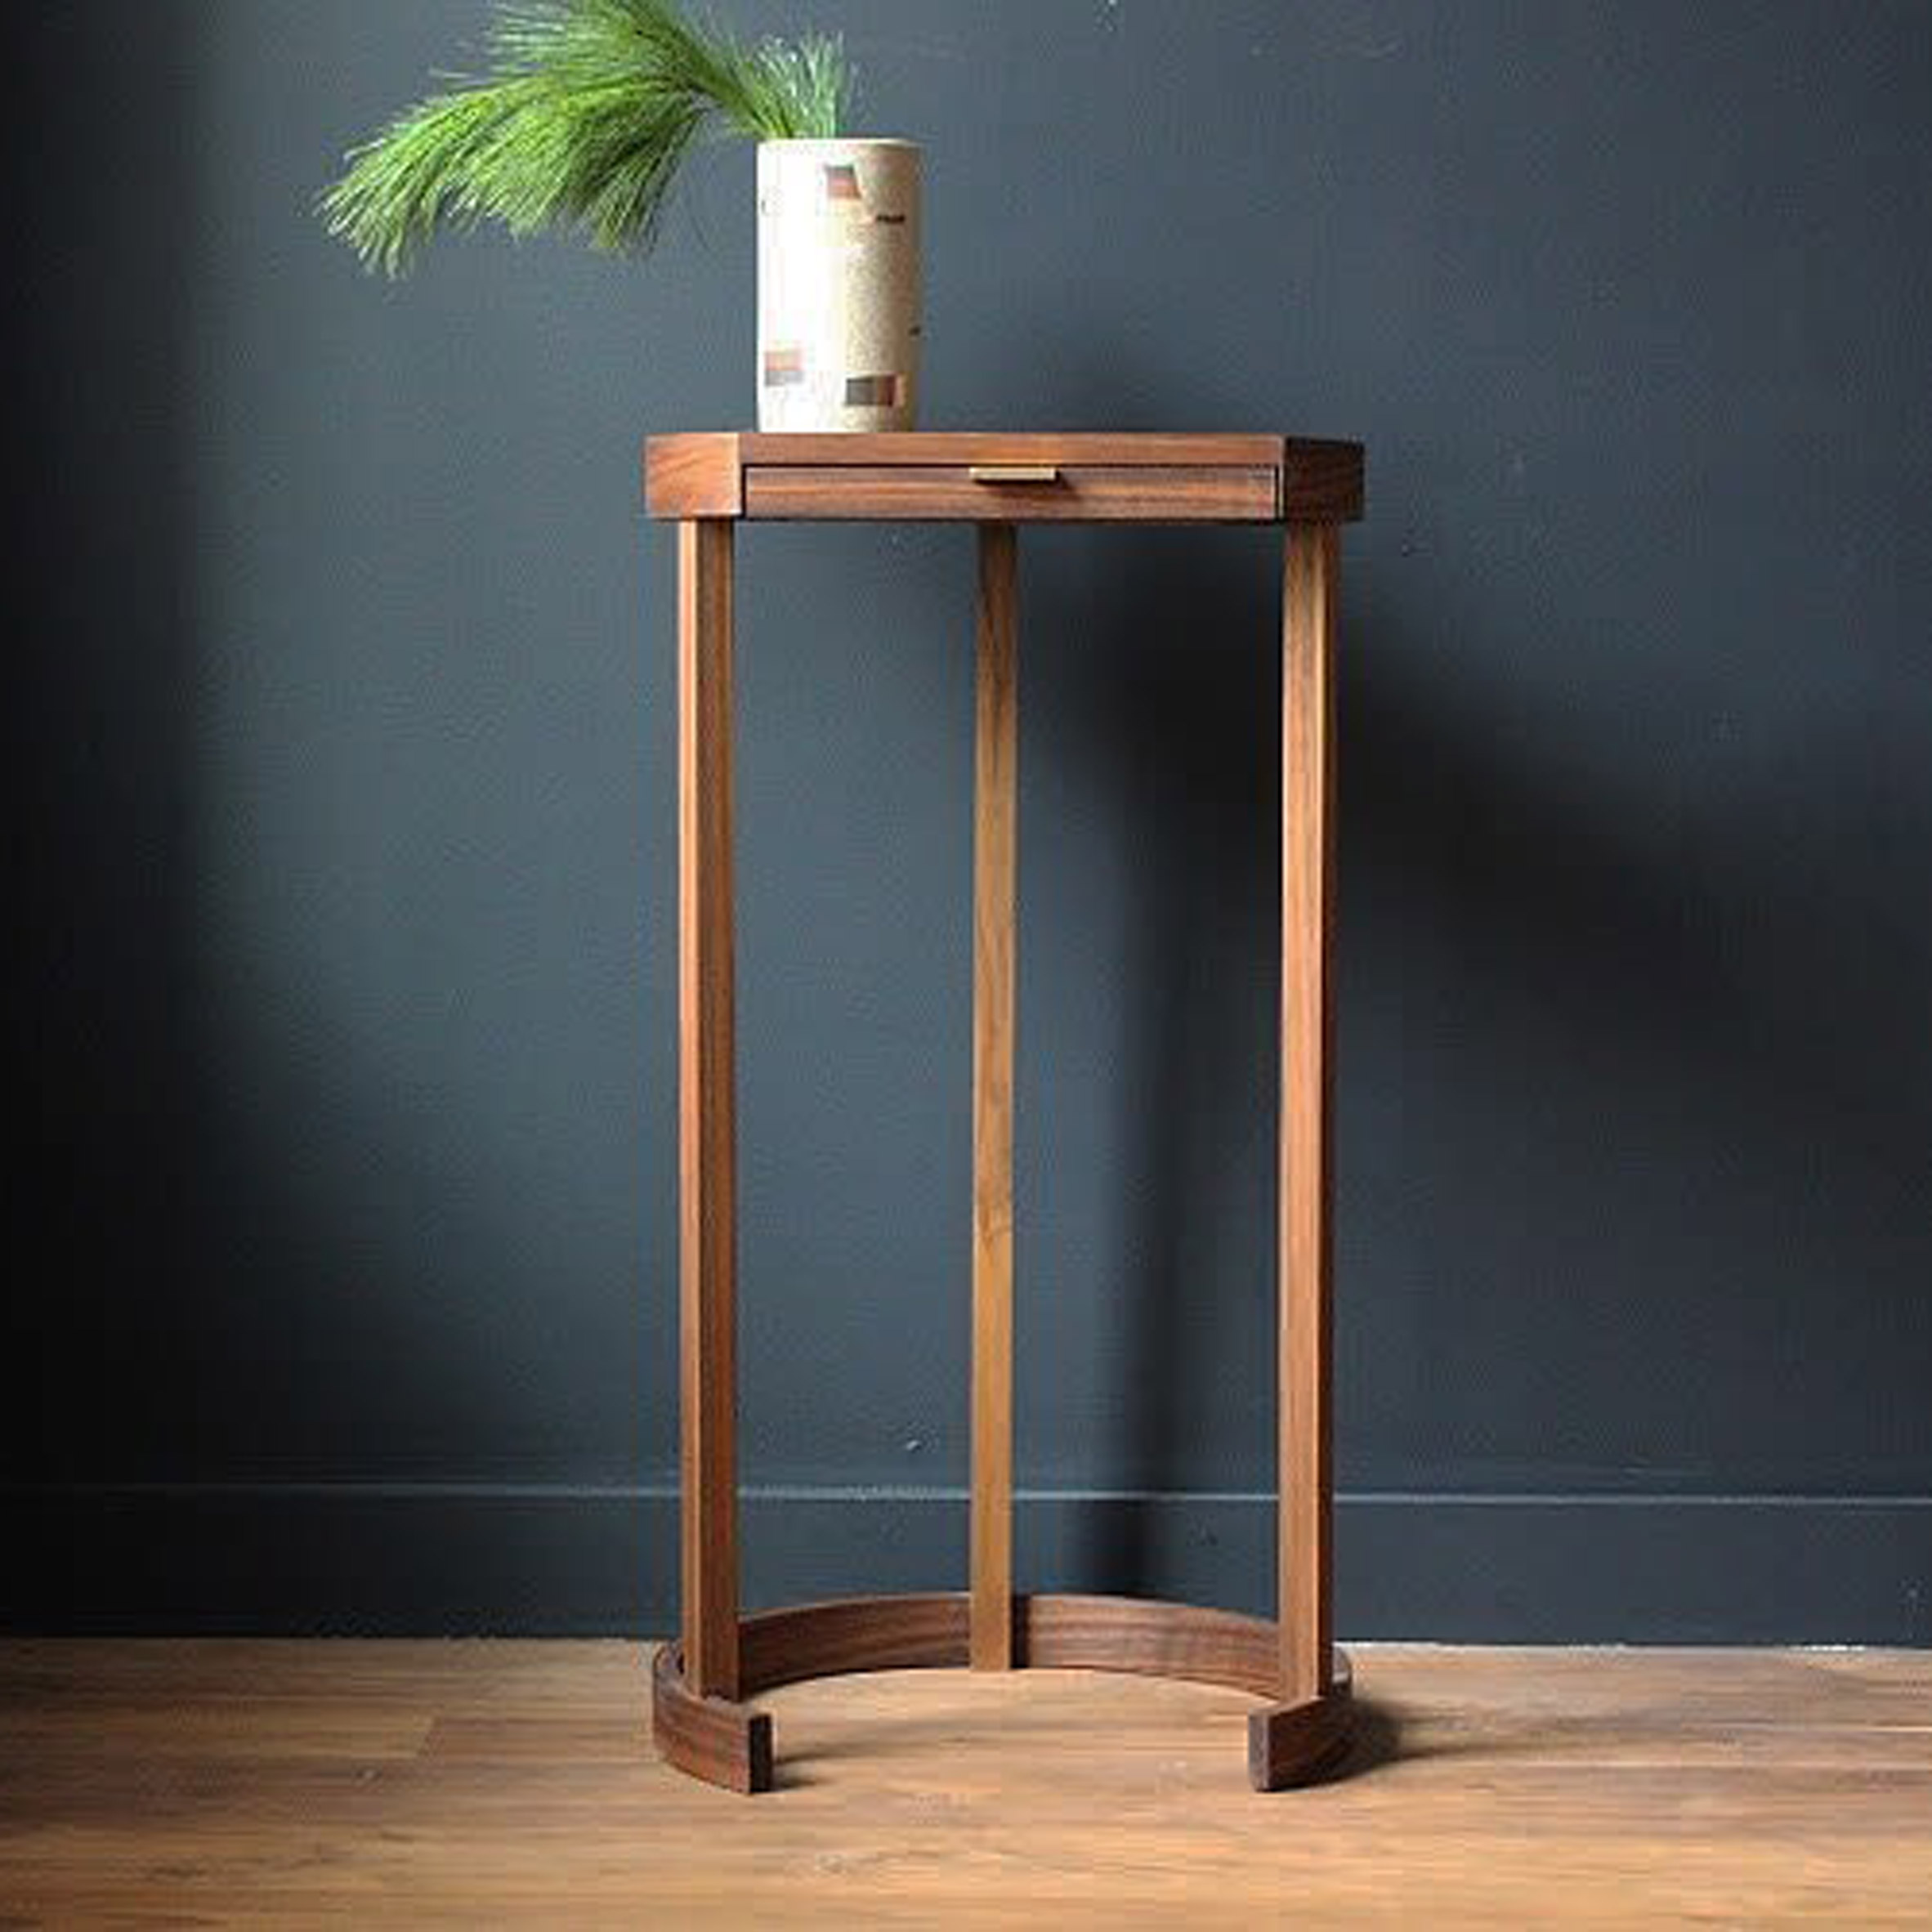 Daisy occasional table by Oxford Street Furniture